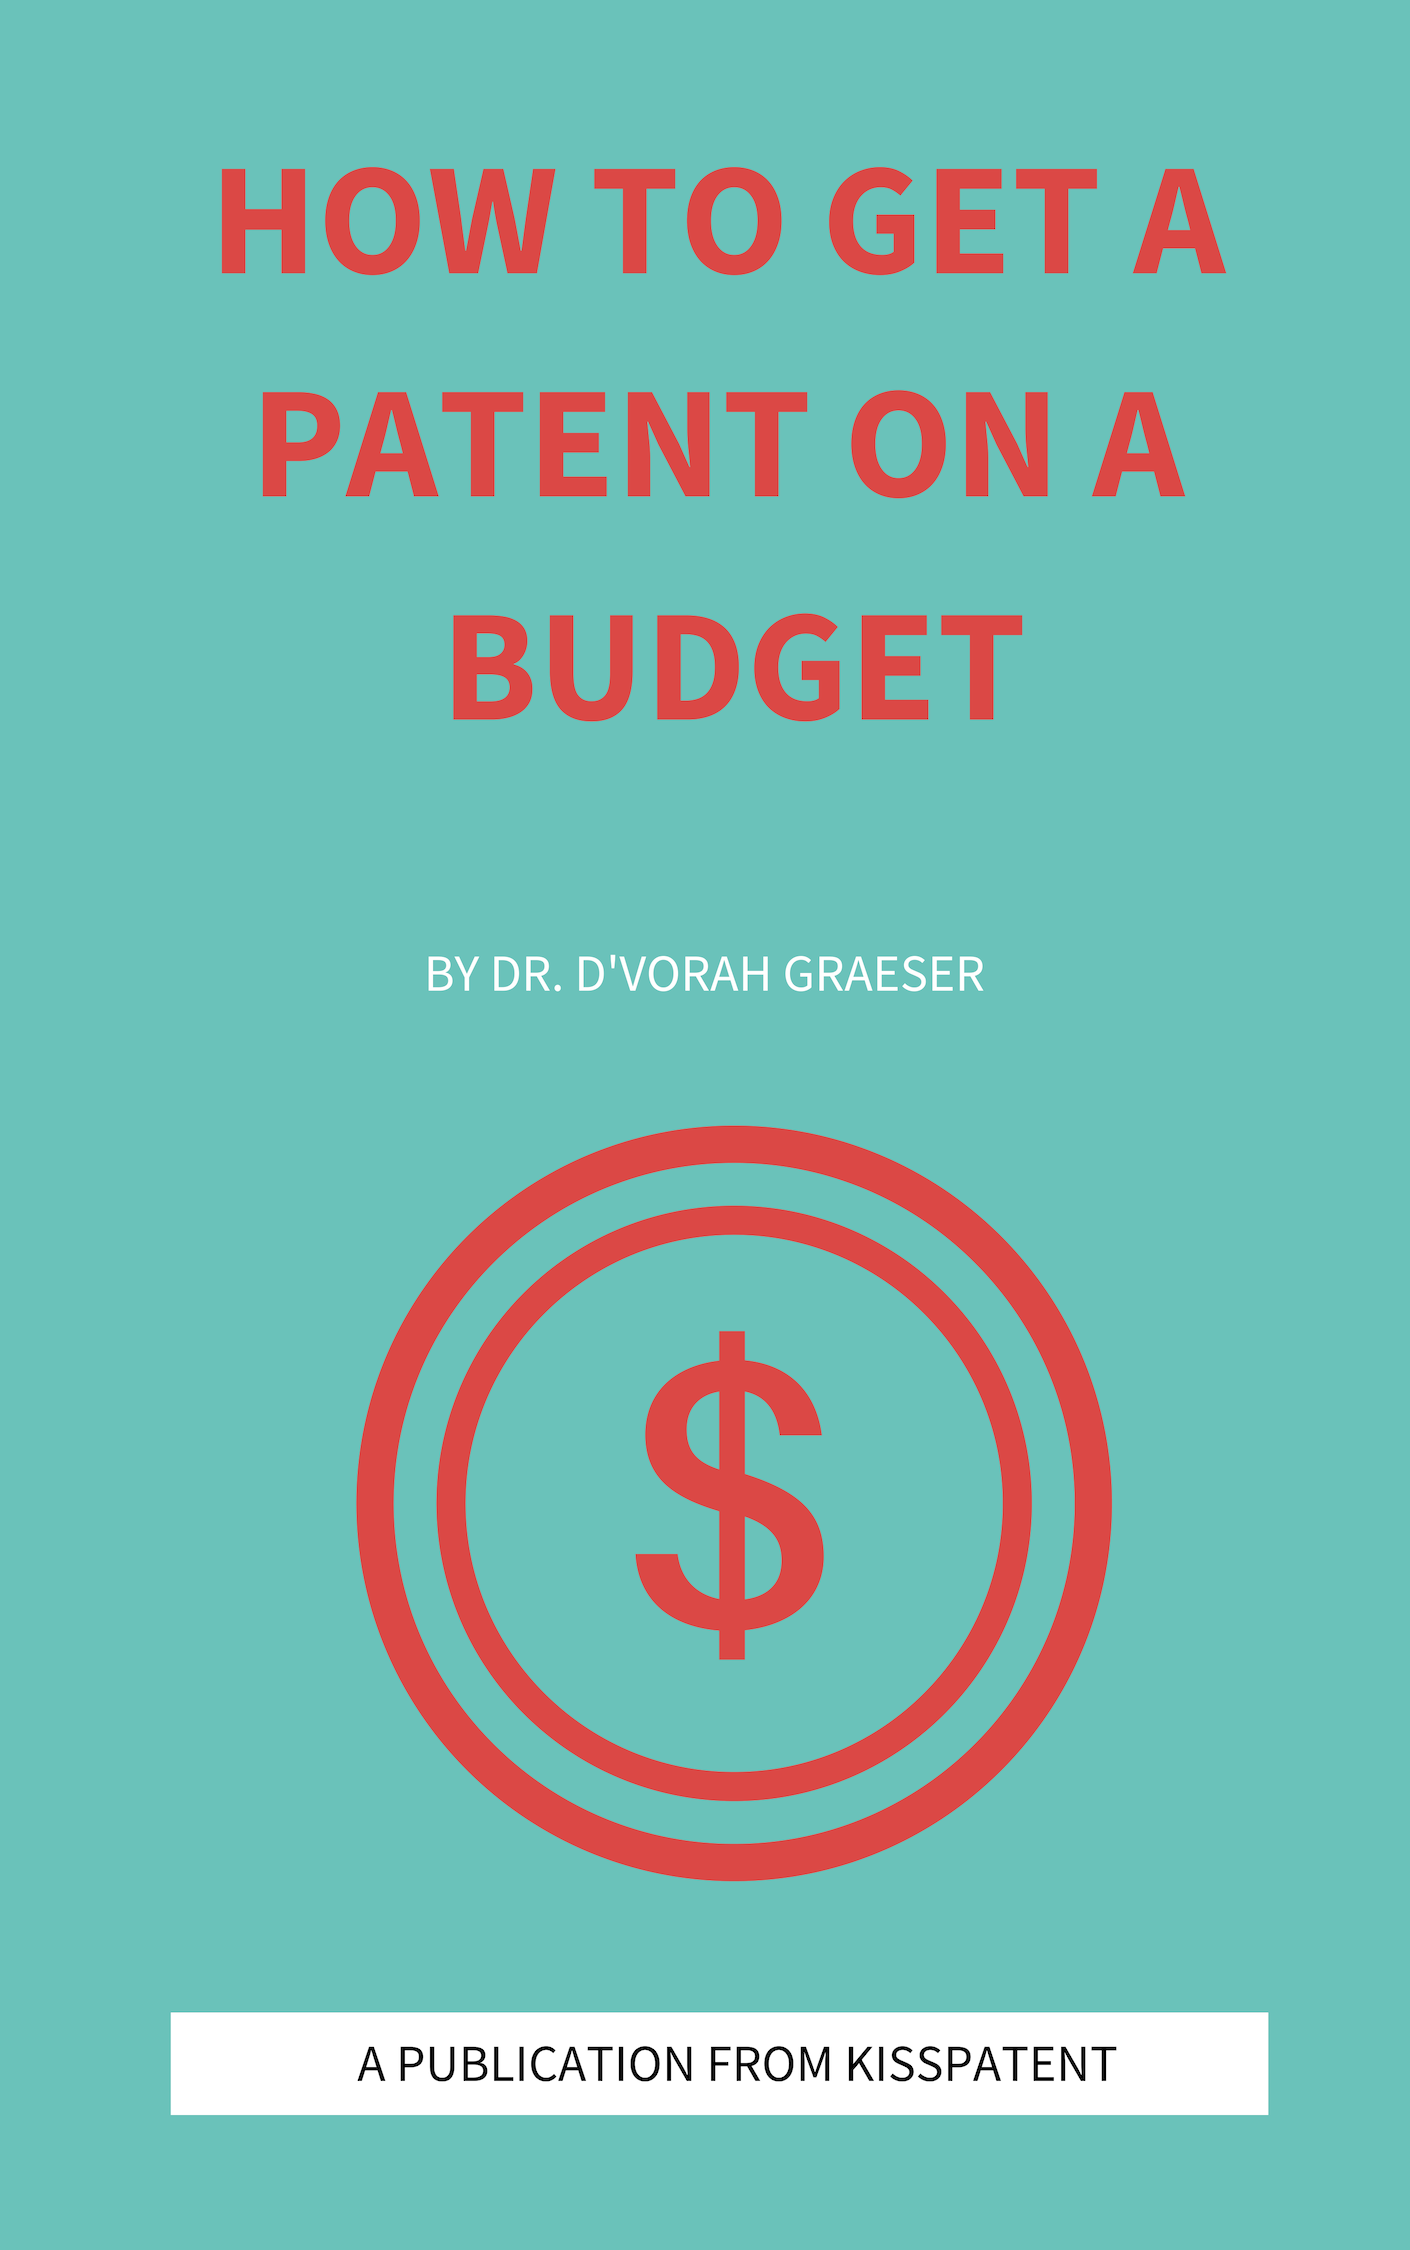 How to get a patent on a budget.png